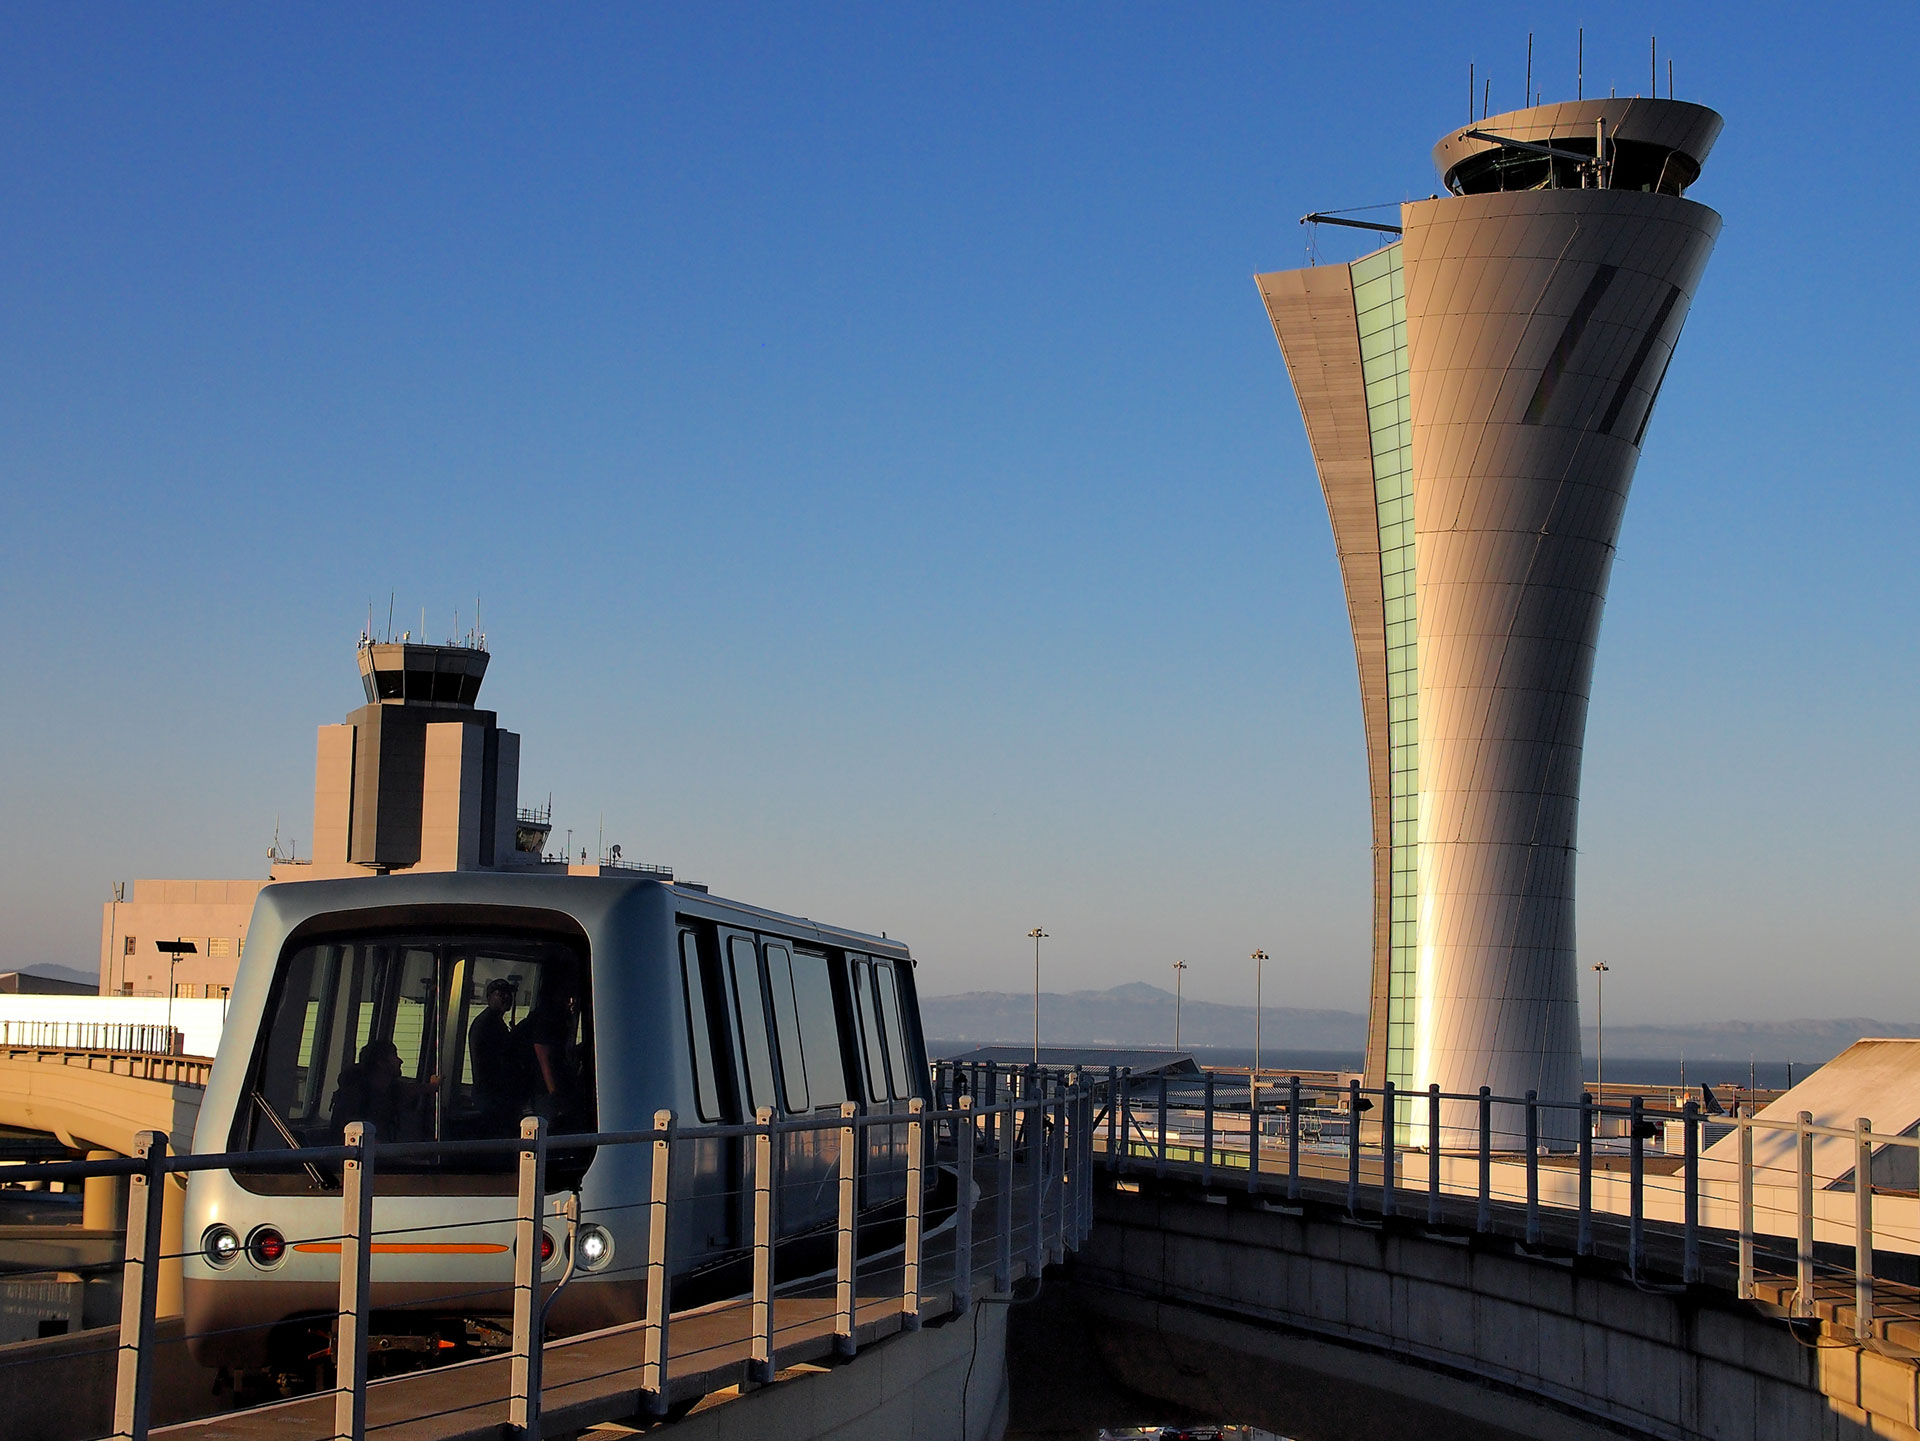 SFO New Airport Traffice Control Tower